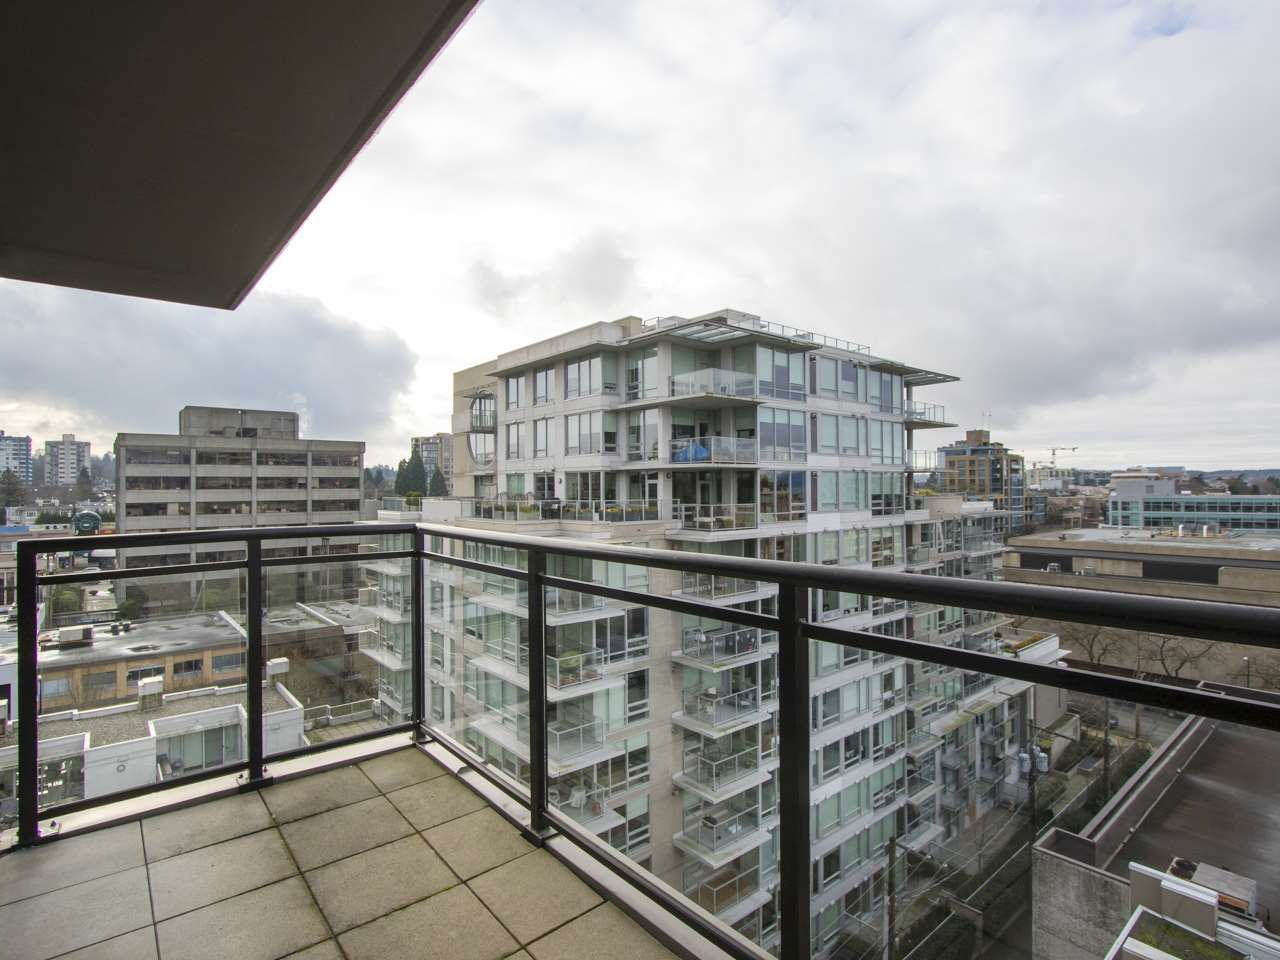 Photo 7: 1002 1650 W 7TH AVENUE in Vancouver: Fairview VW Condo for sale (Vancouver West)  : MLS® # R2022214